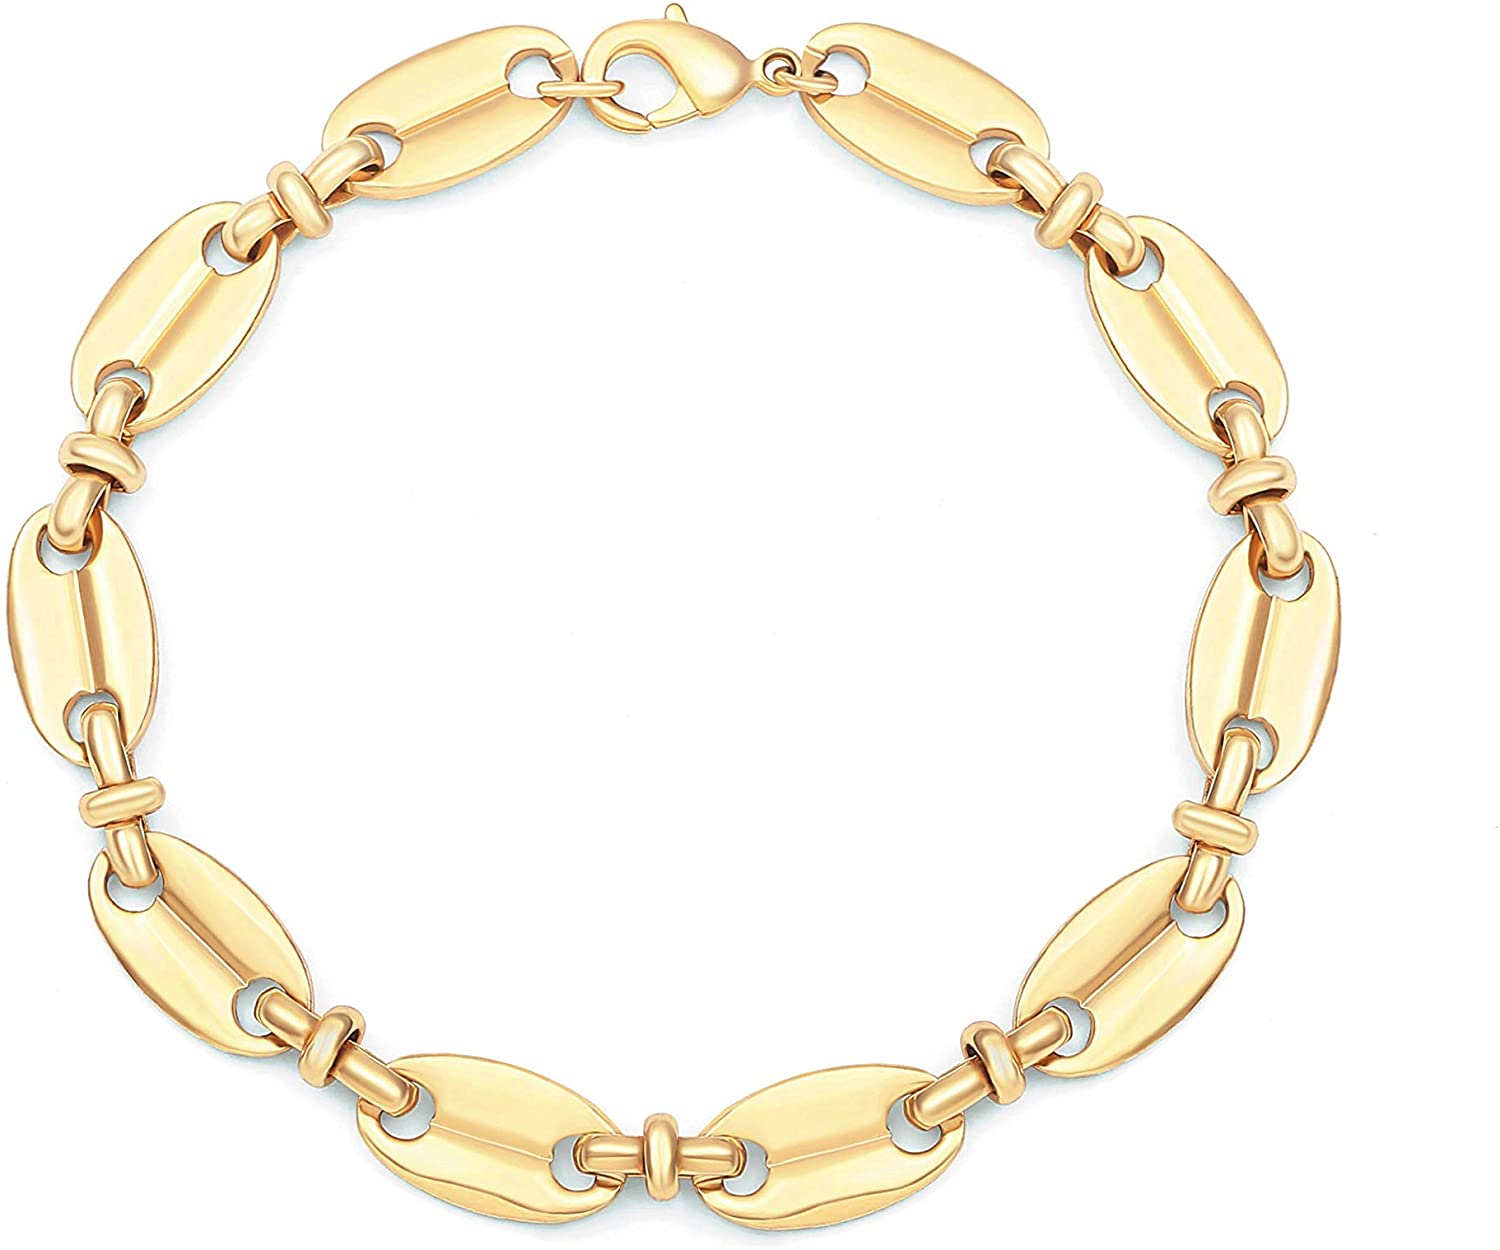 PEARLADA 3-Row 18K Gold Chain Bracelet Dainty Cross Medallion Charm Bracelet OT Toggle Bangle Handmade Stacking Layering Jewelry Fashion Long and Short Oval Link Bracelet for Her